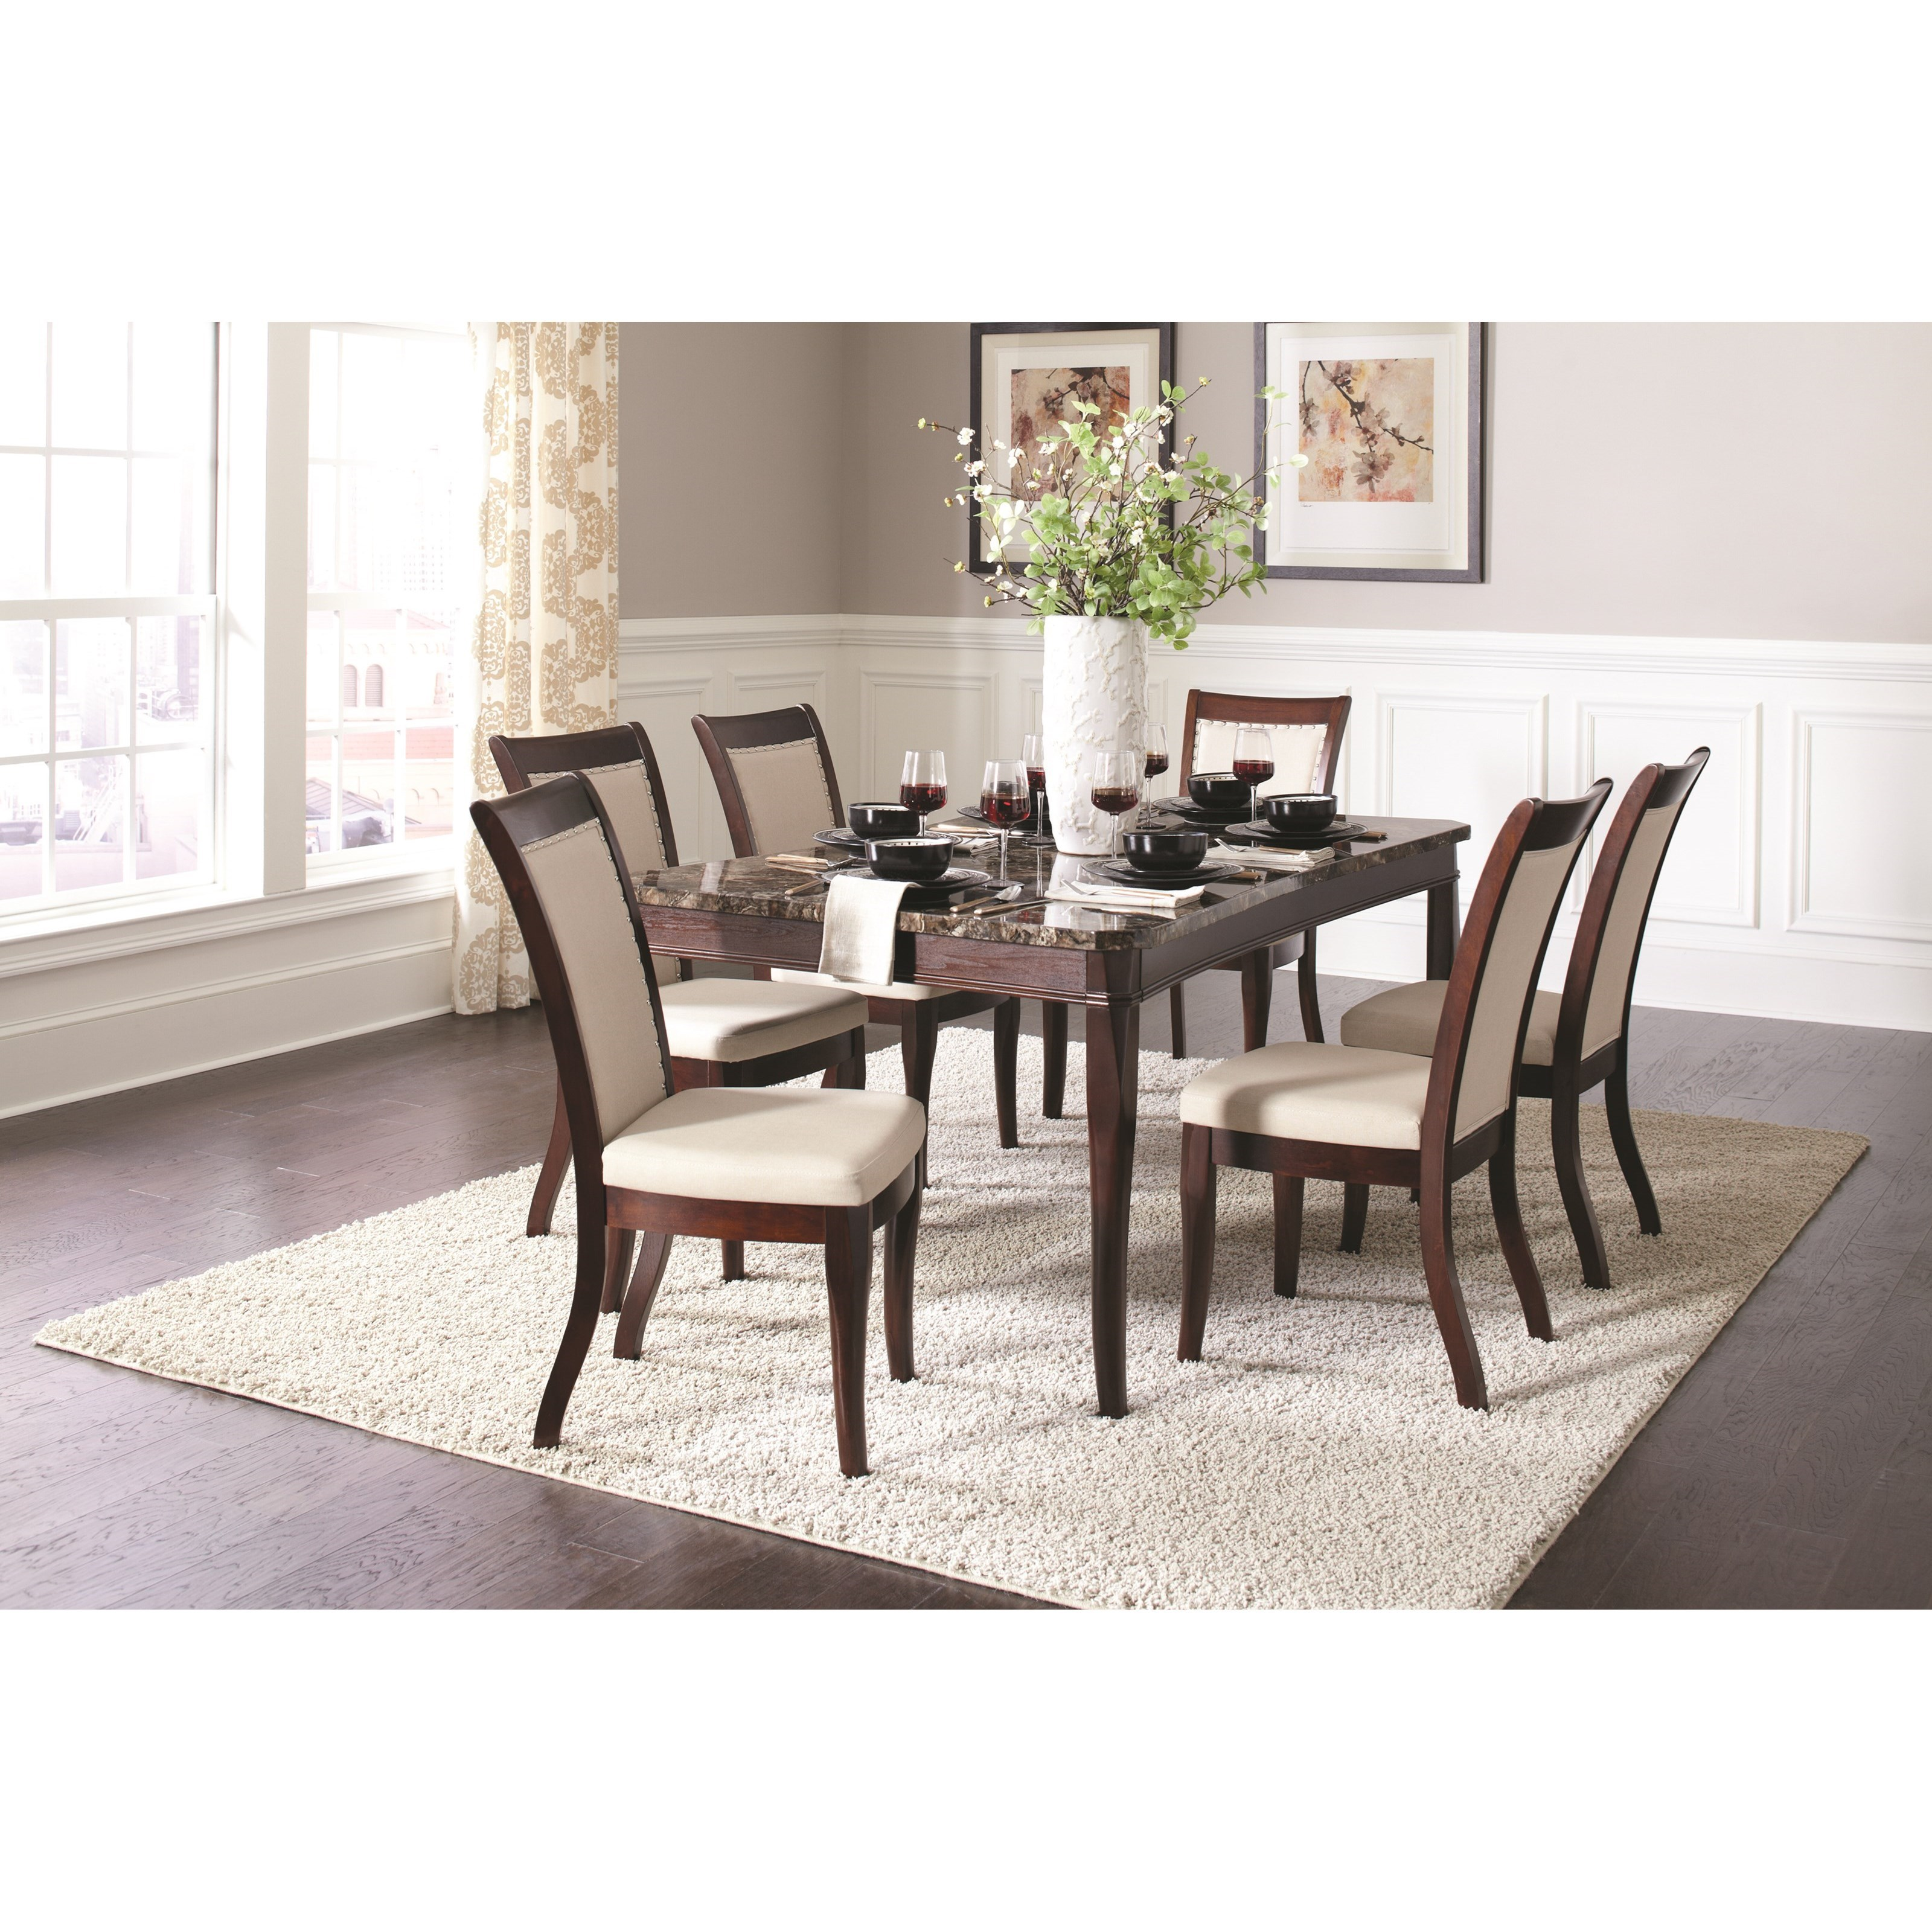 Cornett Rectangular Dining Table With Faux Stone Top Quality - Stone top rectangular dining table